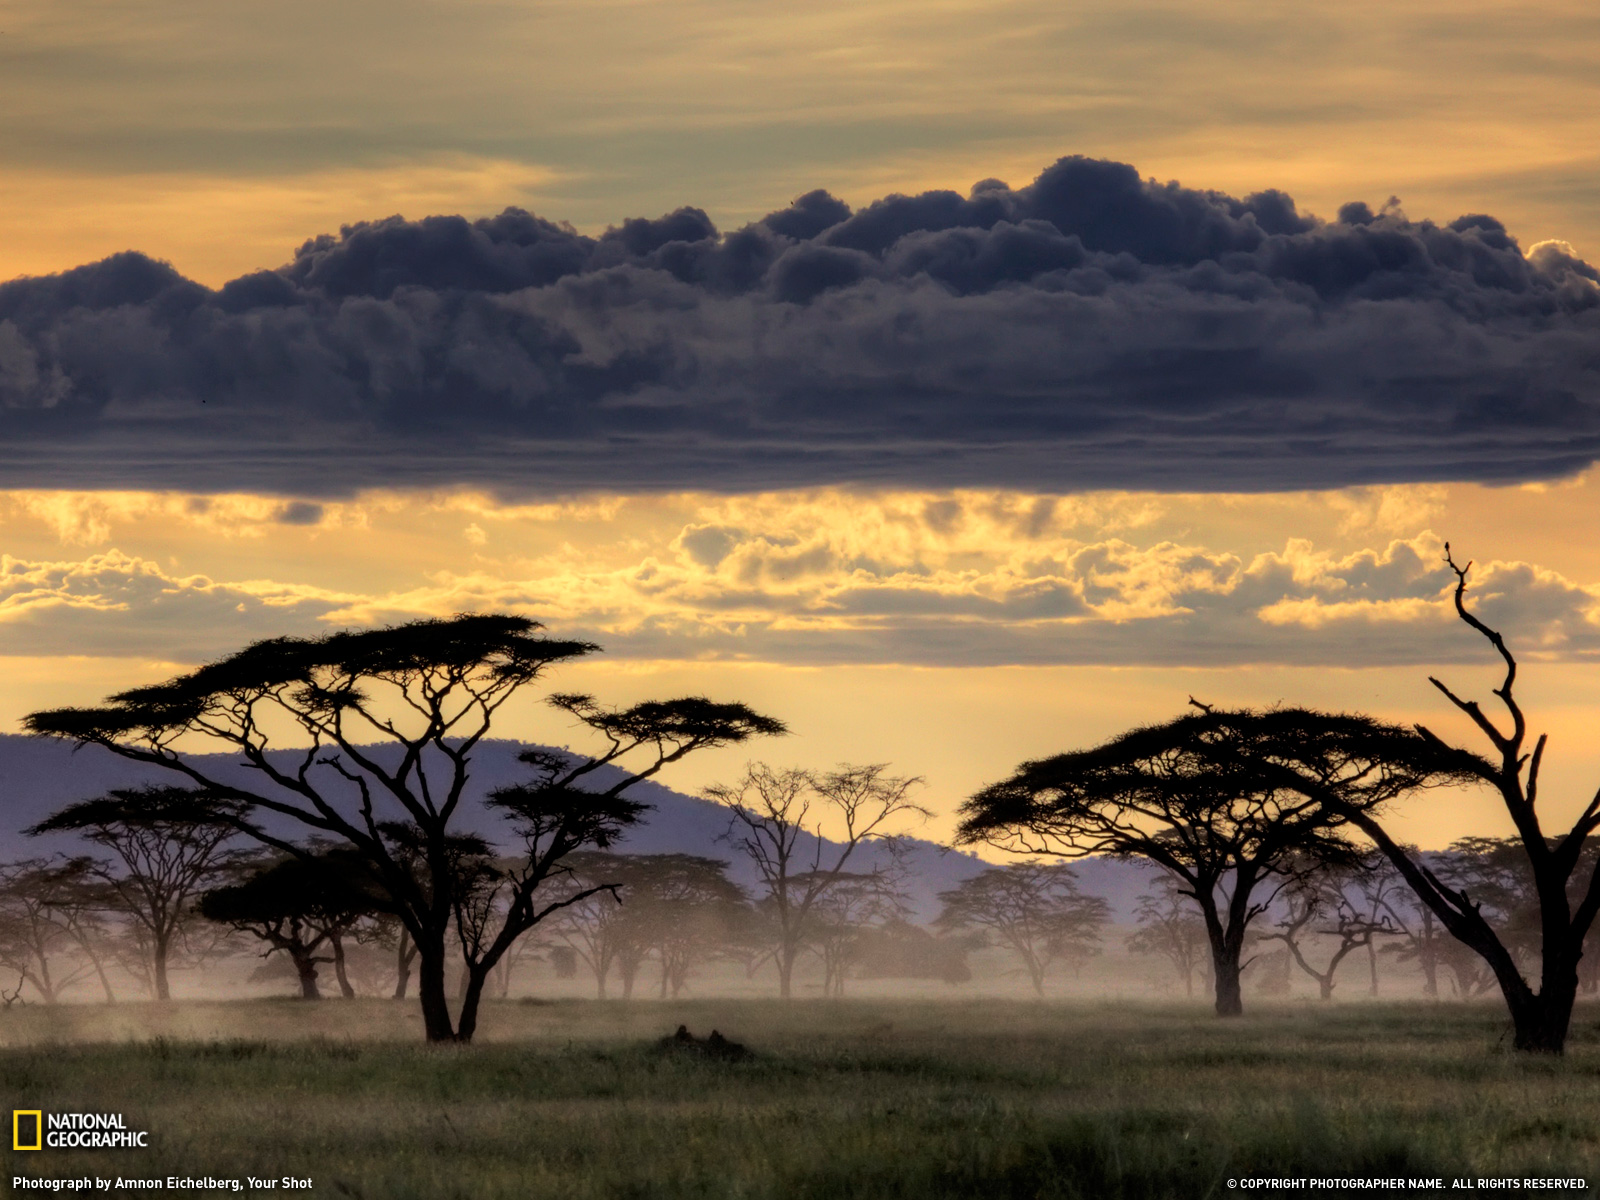 geography nature africa and america This article treats the physical and human geography of africa, followed by discussion of geographic features of special interest for discussion of individual countries of the continent, see such articles as egypt, madagascar, and sudan.